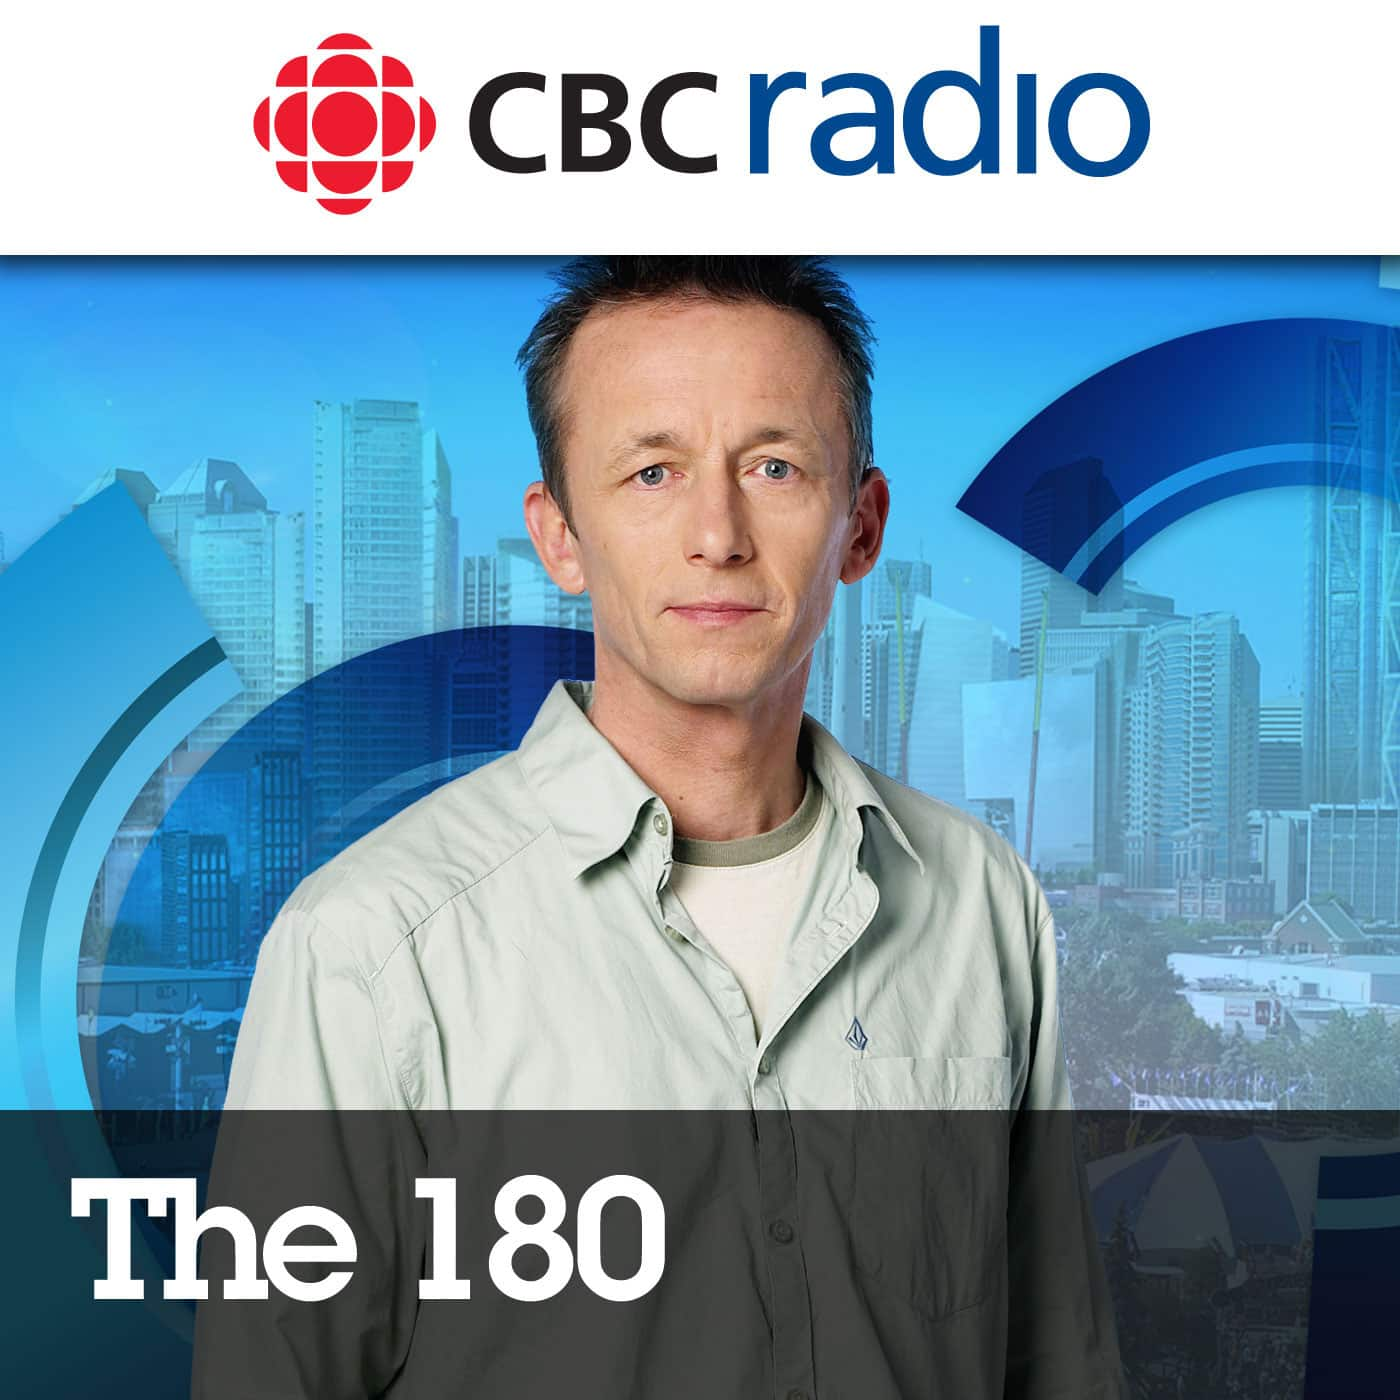 The 180 from CBC Radio